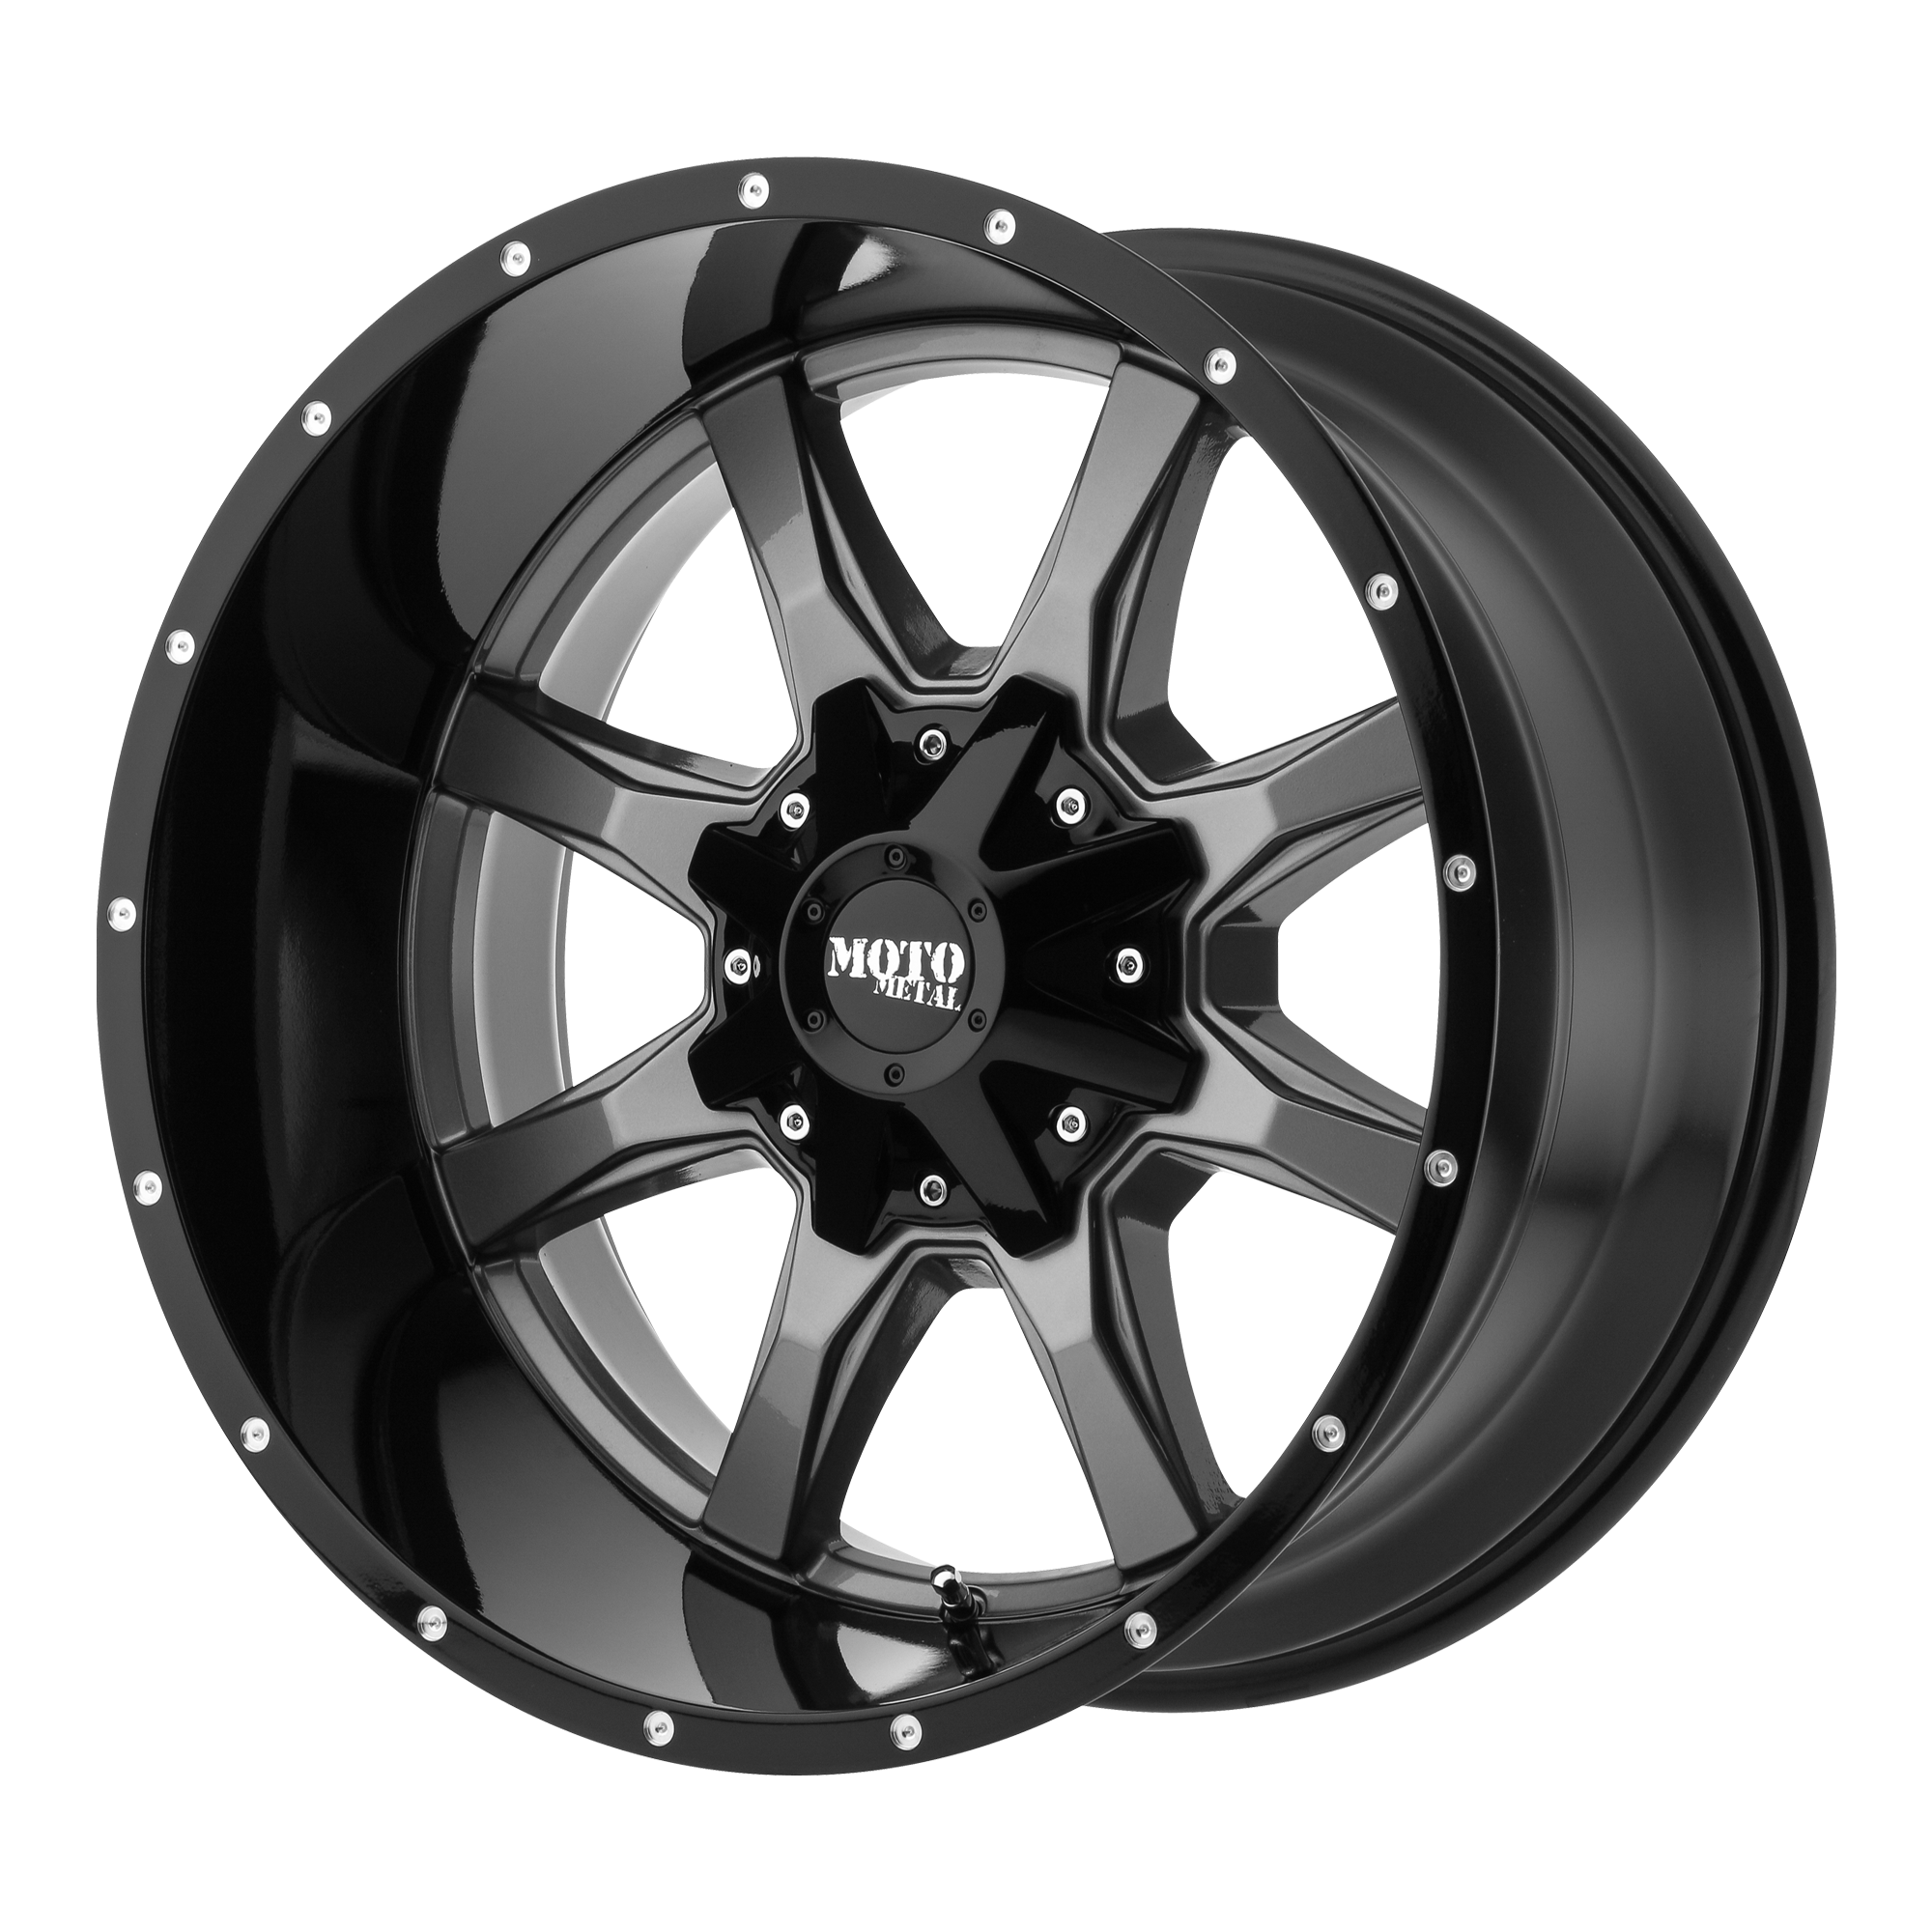 MOTO METAL MO970 hliníkové disky 12x20 8x165,1 ET-44 Gloss Gray Center Gloss Black Lip